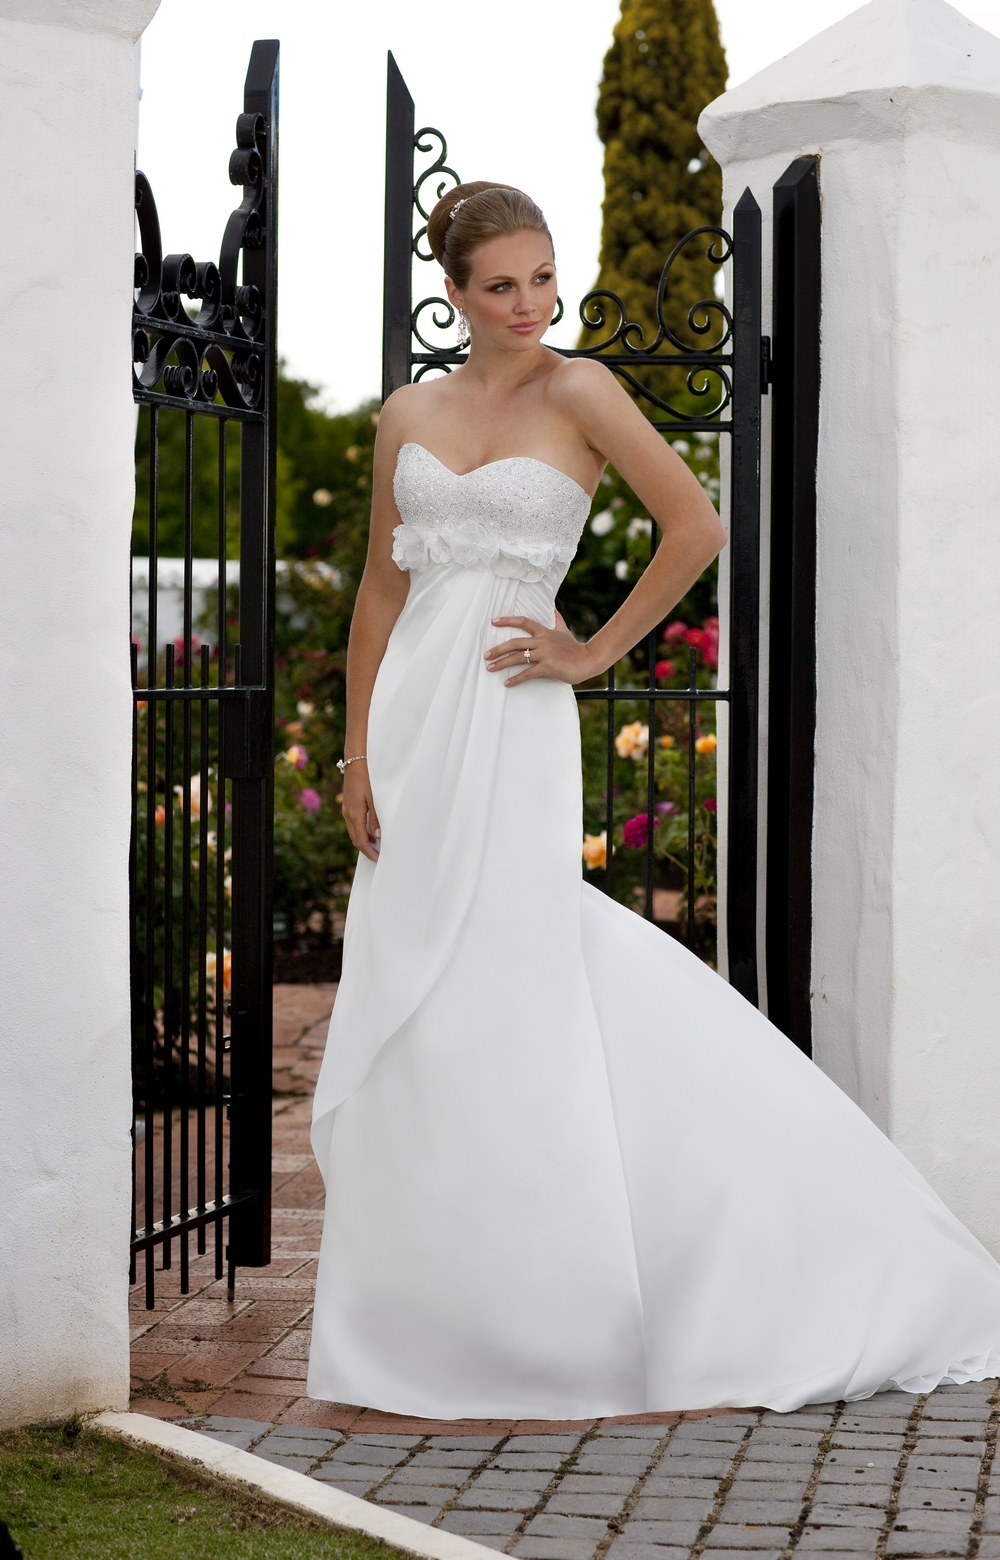 Essense-of-australia-wedding-dresses-2010-2011-d1080-strapless.full